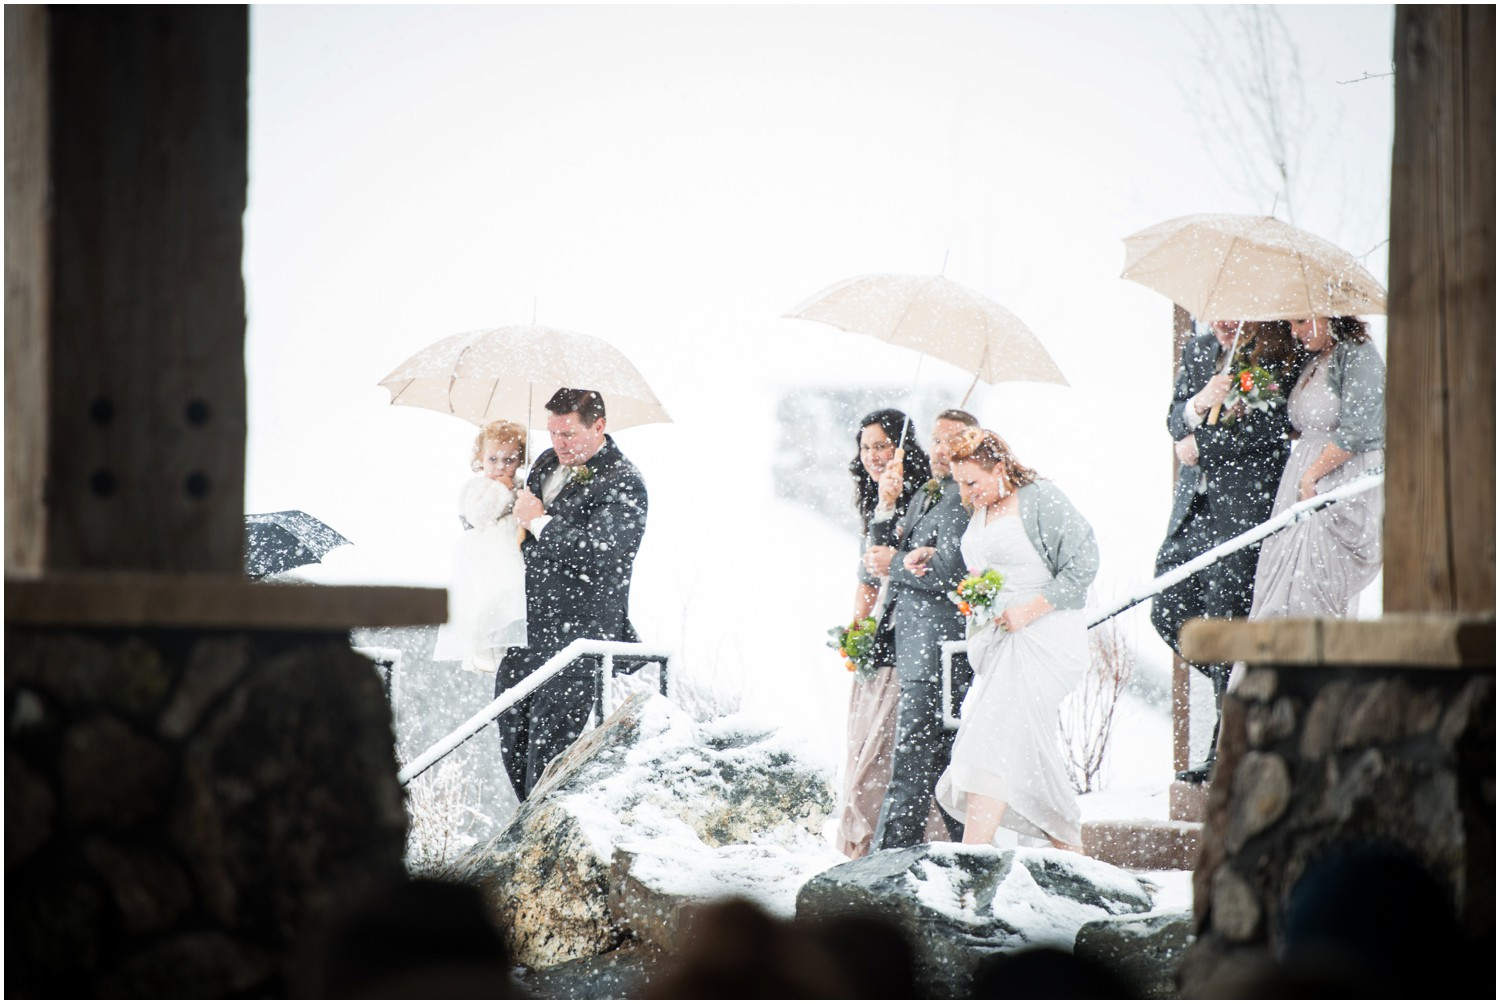 Devils-thumb-ranch-colorado-snowy-wedding-_0044.jpg